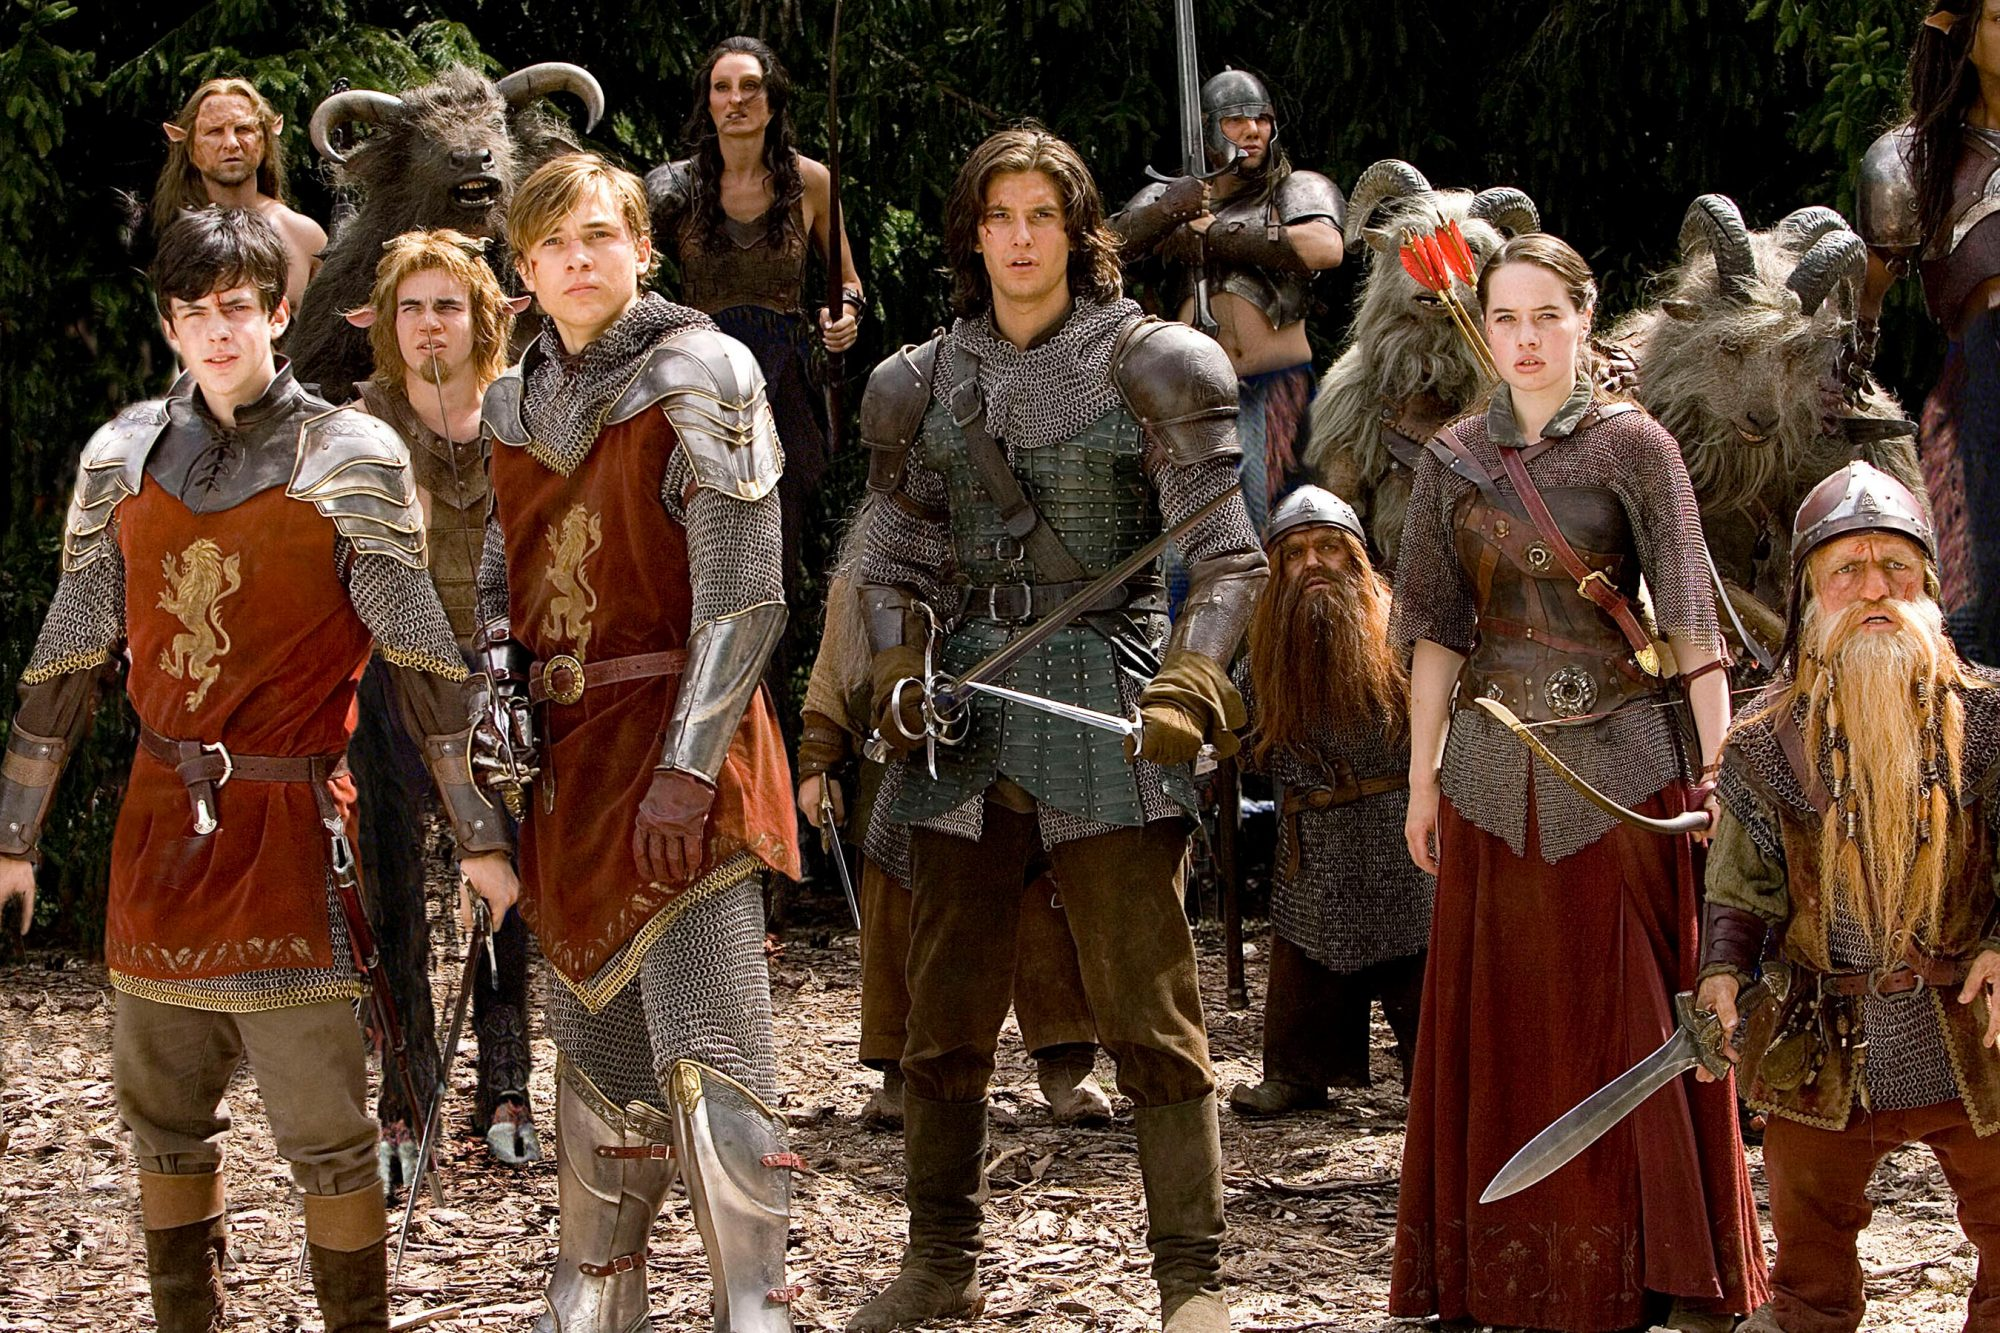 THE CHRONICLES OF NARNIA: PRINCE CASPIAN, Skander Keynes, William Moseley, Ben Barnes, Anna Popplewe